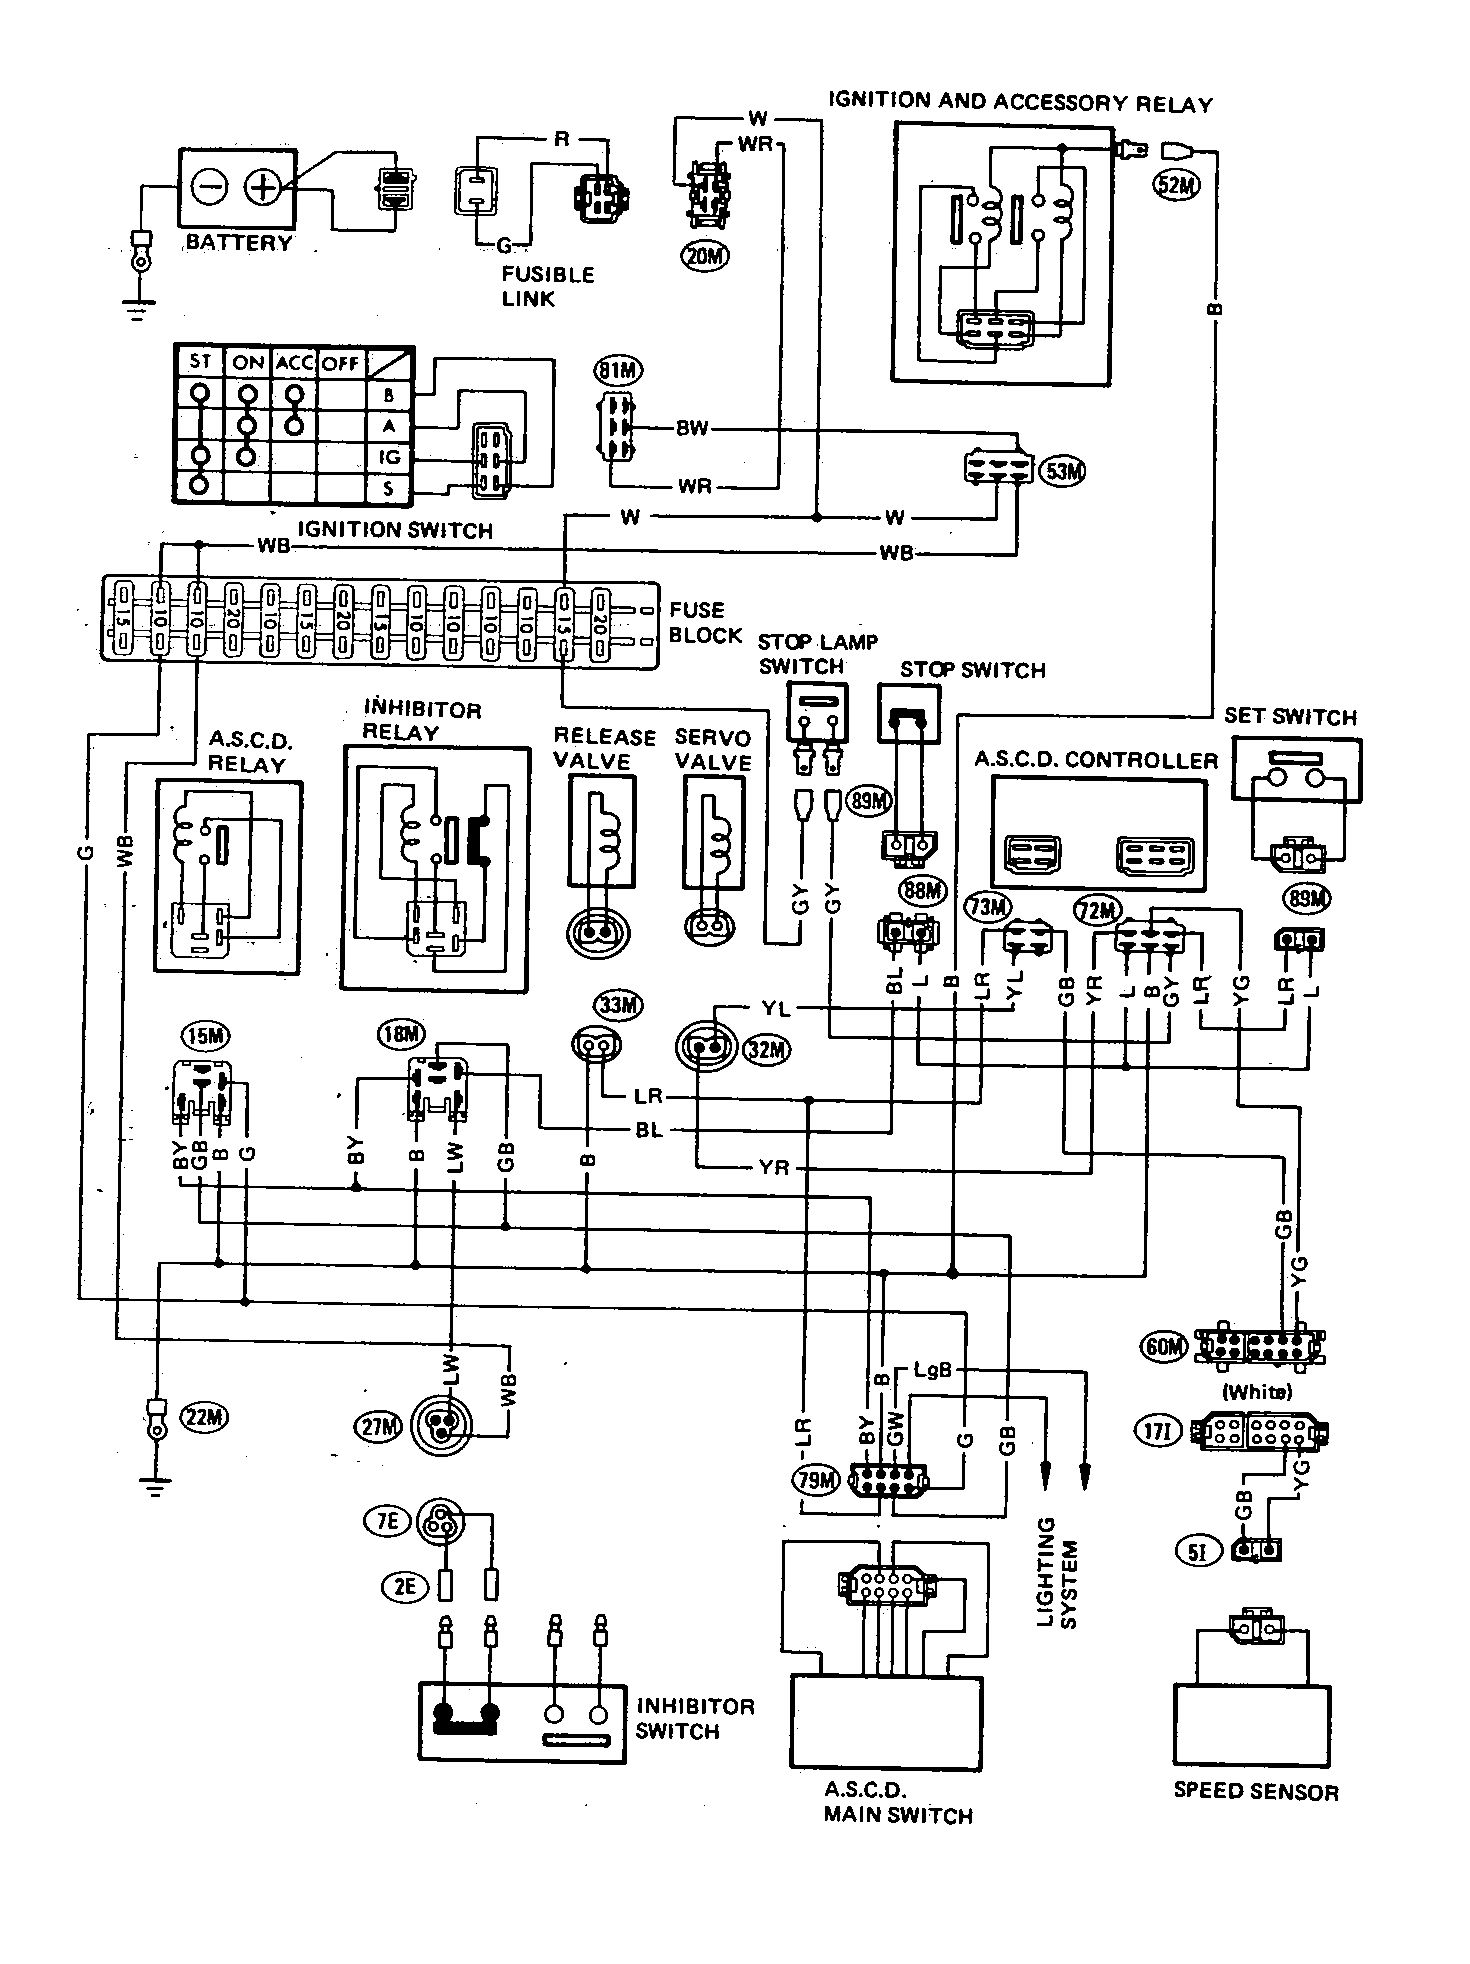 Datsun 200sx 1980 Wire Diagram Automatic Speed Control Device Nissan Connect Wiring